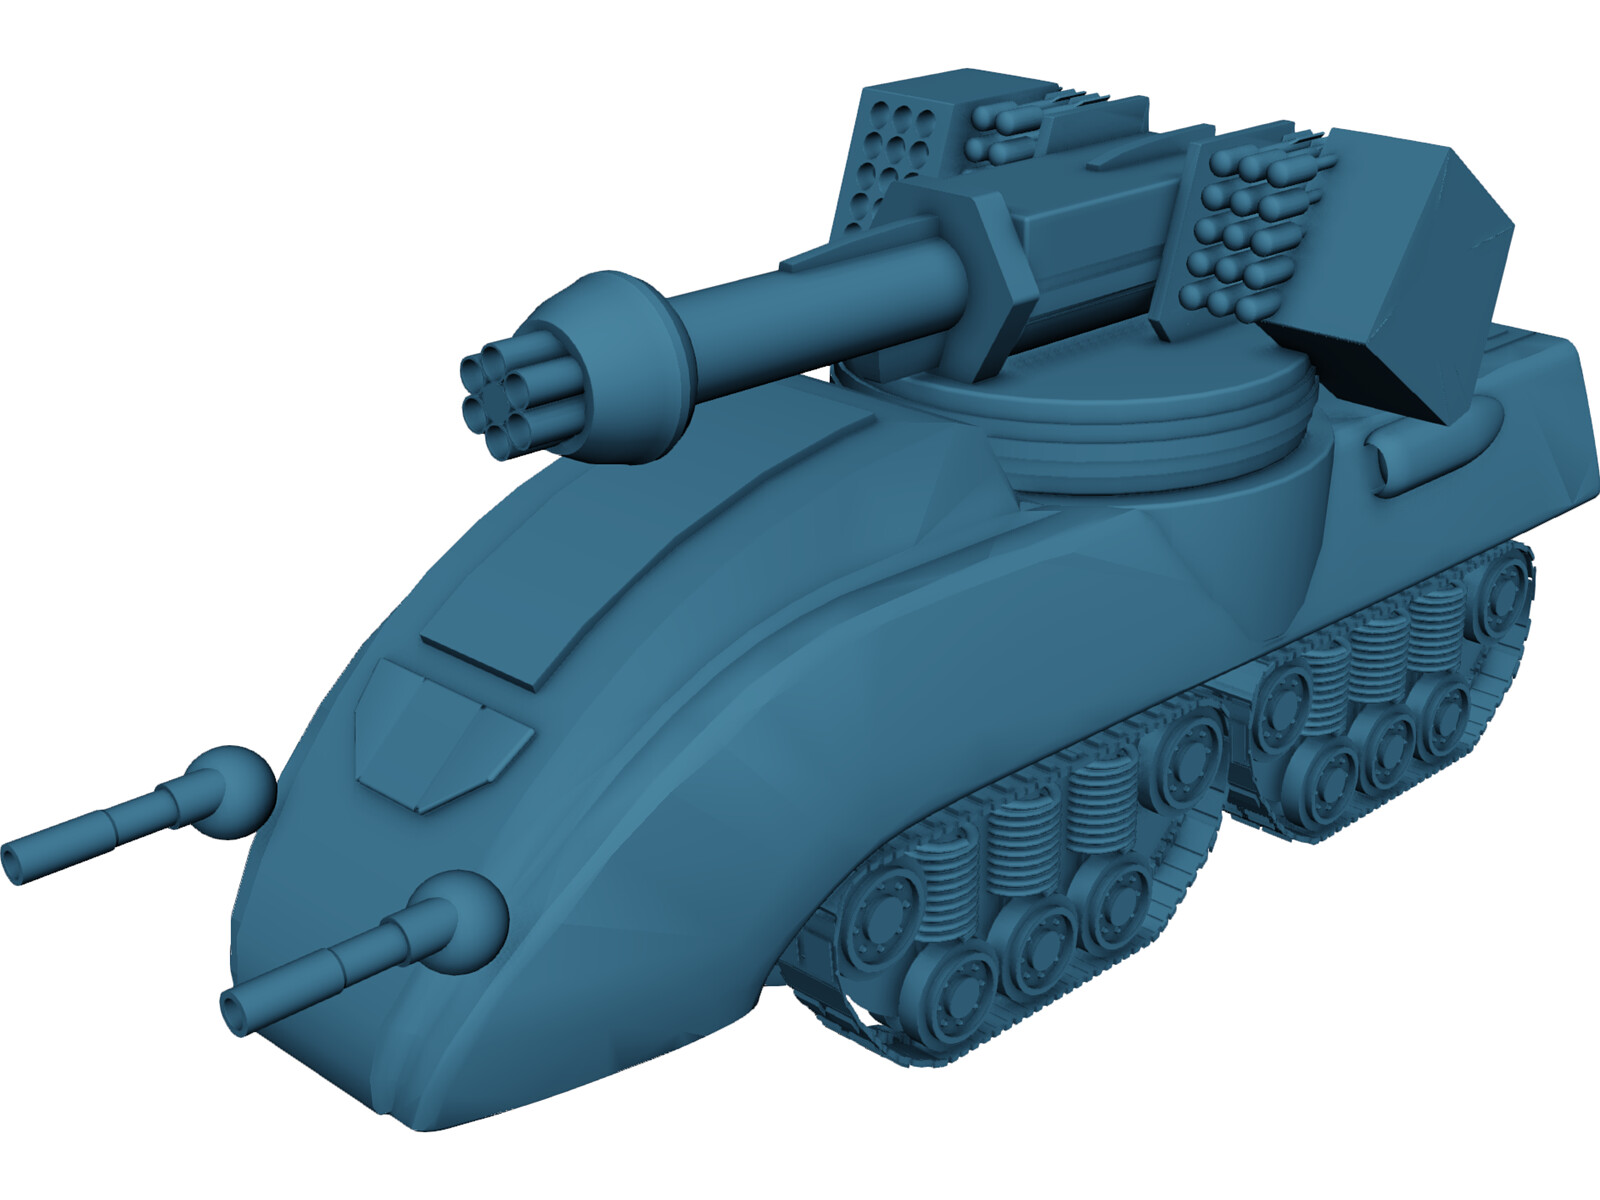 Glory Fire Support Tank